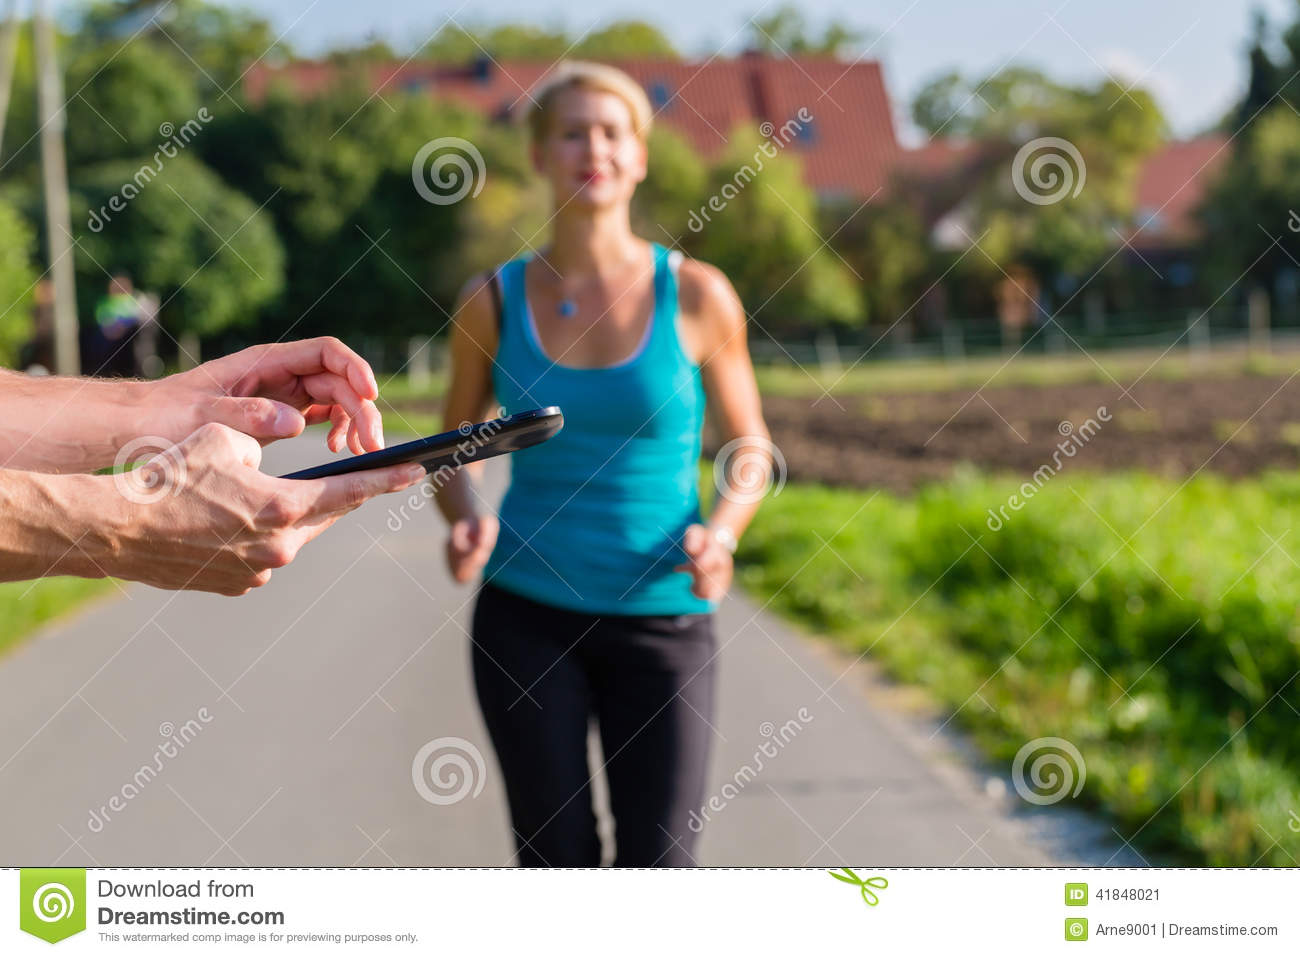 Jogging Run Time Couple Running Sport Jogging On Rural Street Stock Image